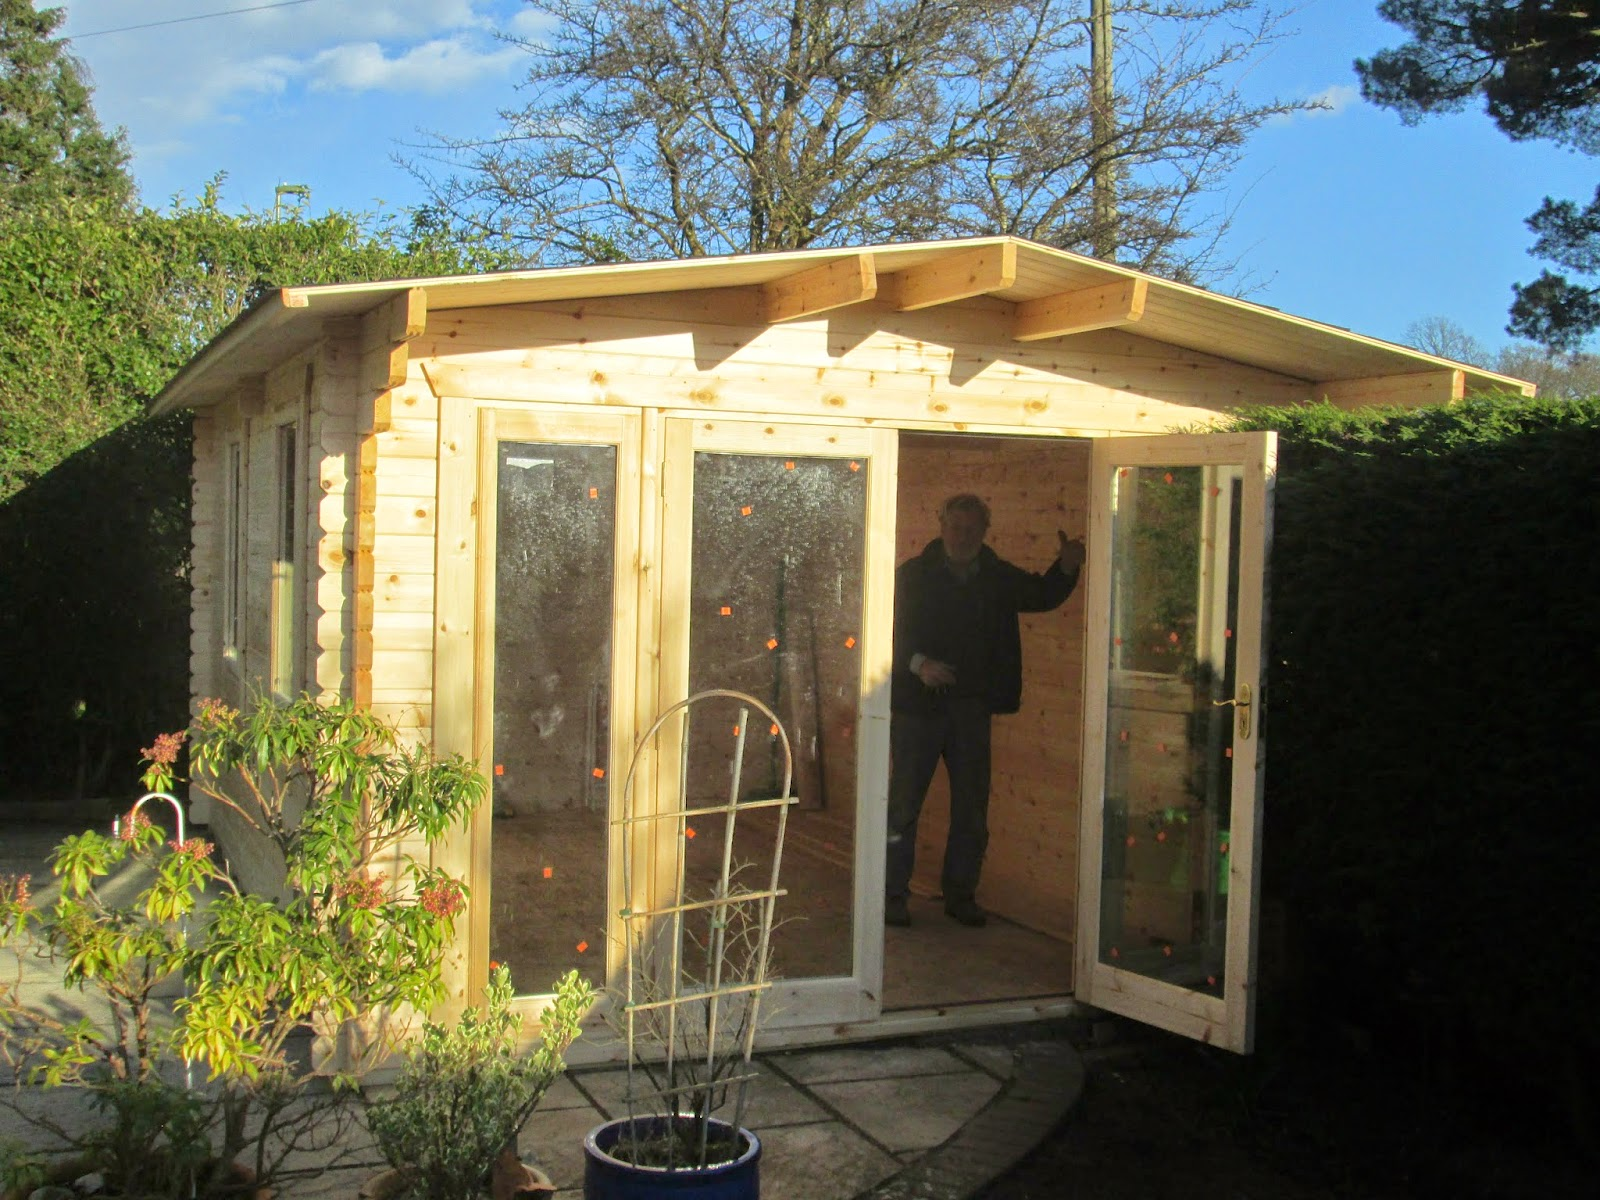 Southwick 39 S Garden Offices 15 39 X 11 39 Insulated Garden